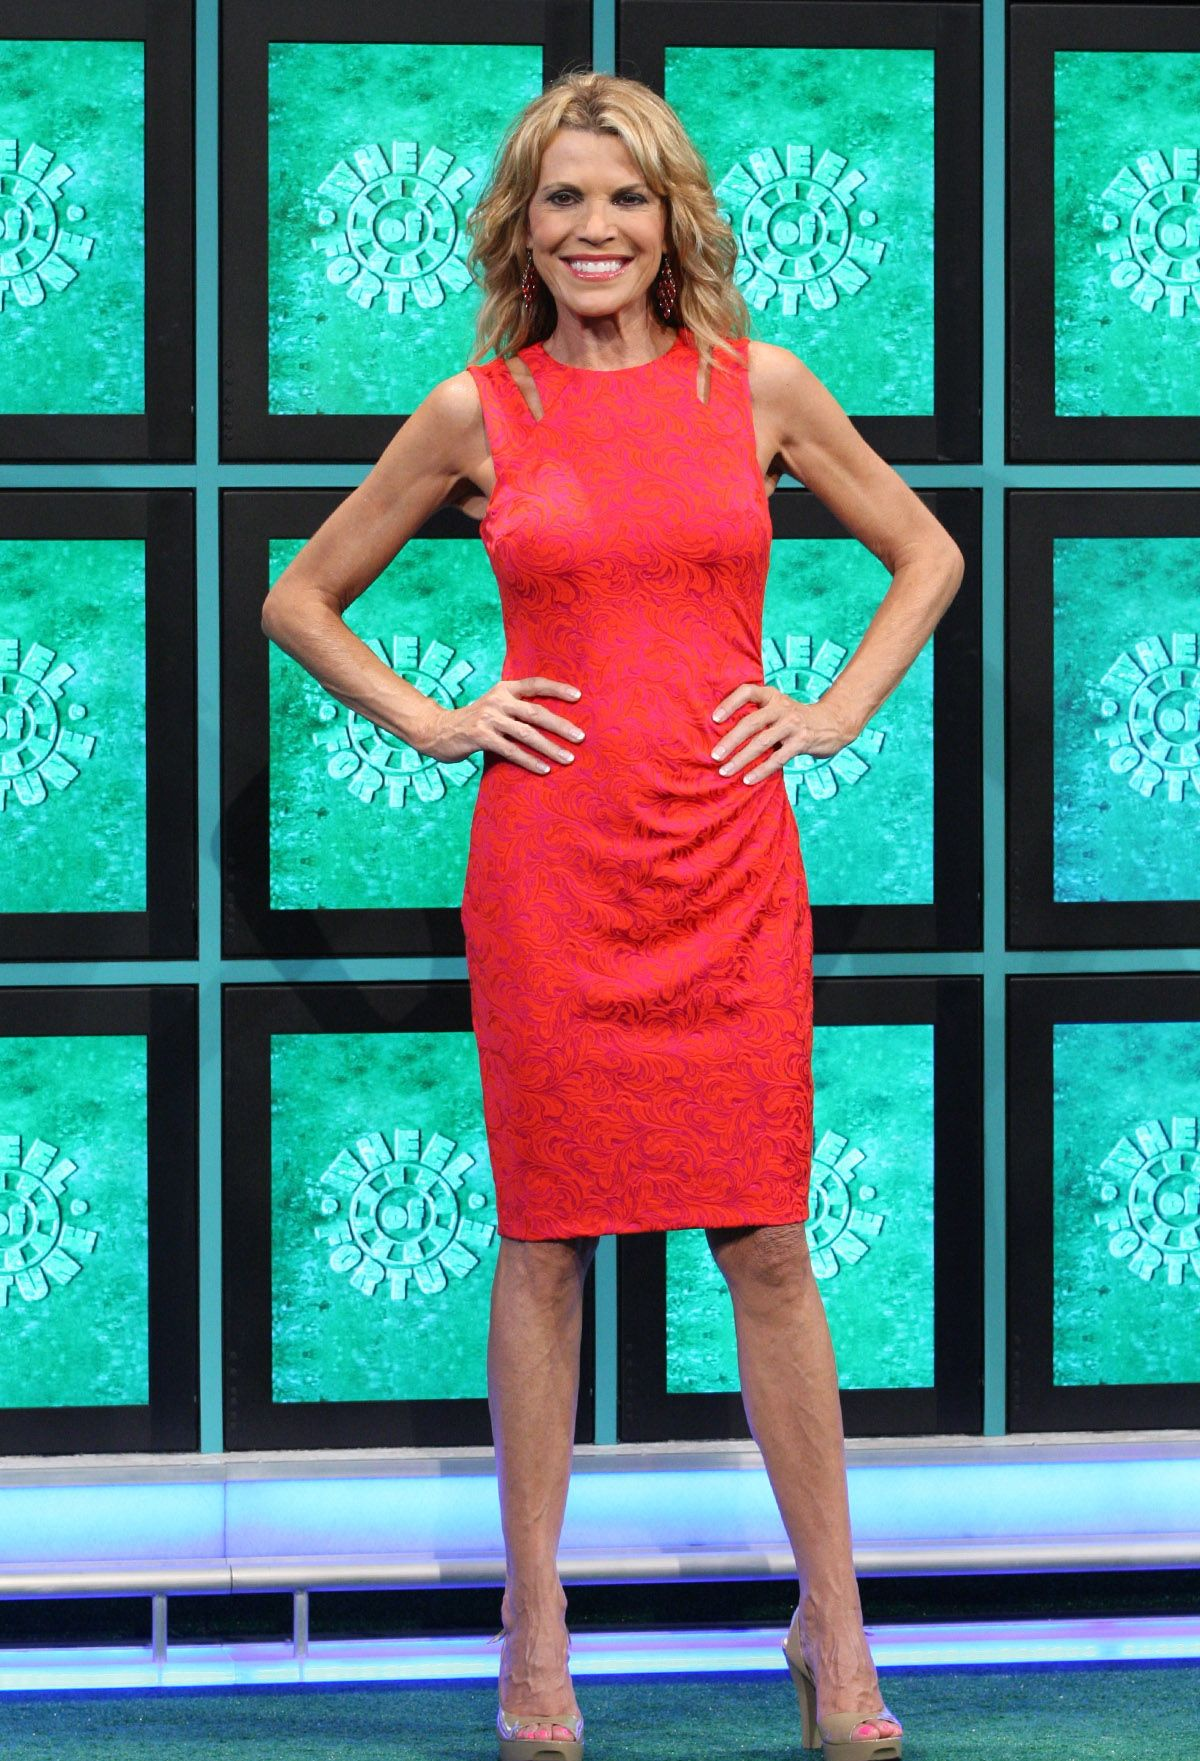 Vanna white looking great in our fuchsia sleeveless jacquard dress vanna white looking great in our fuchsia sleeveless jacquard dress with cutout detail ombrellifo Choice Image